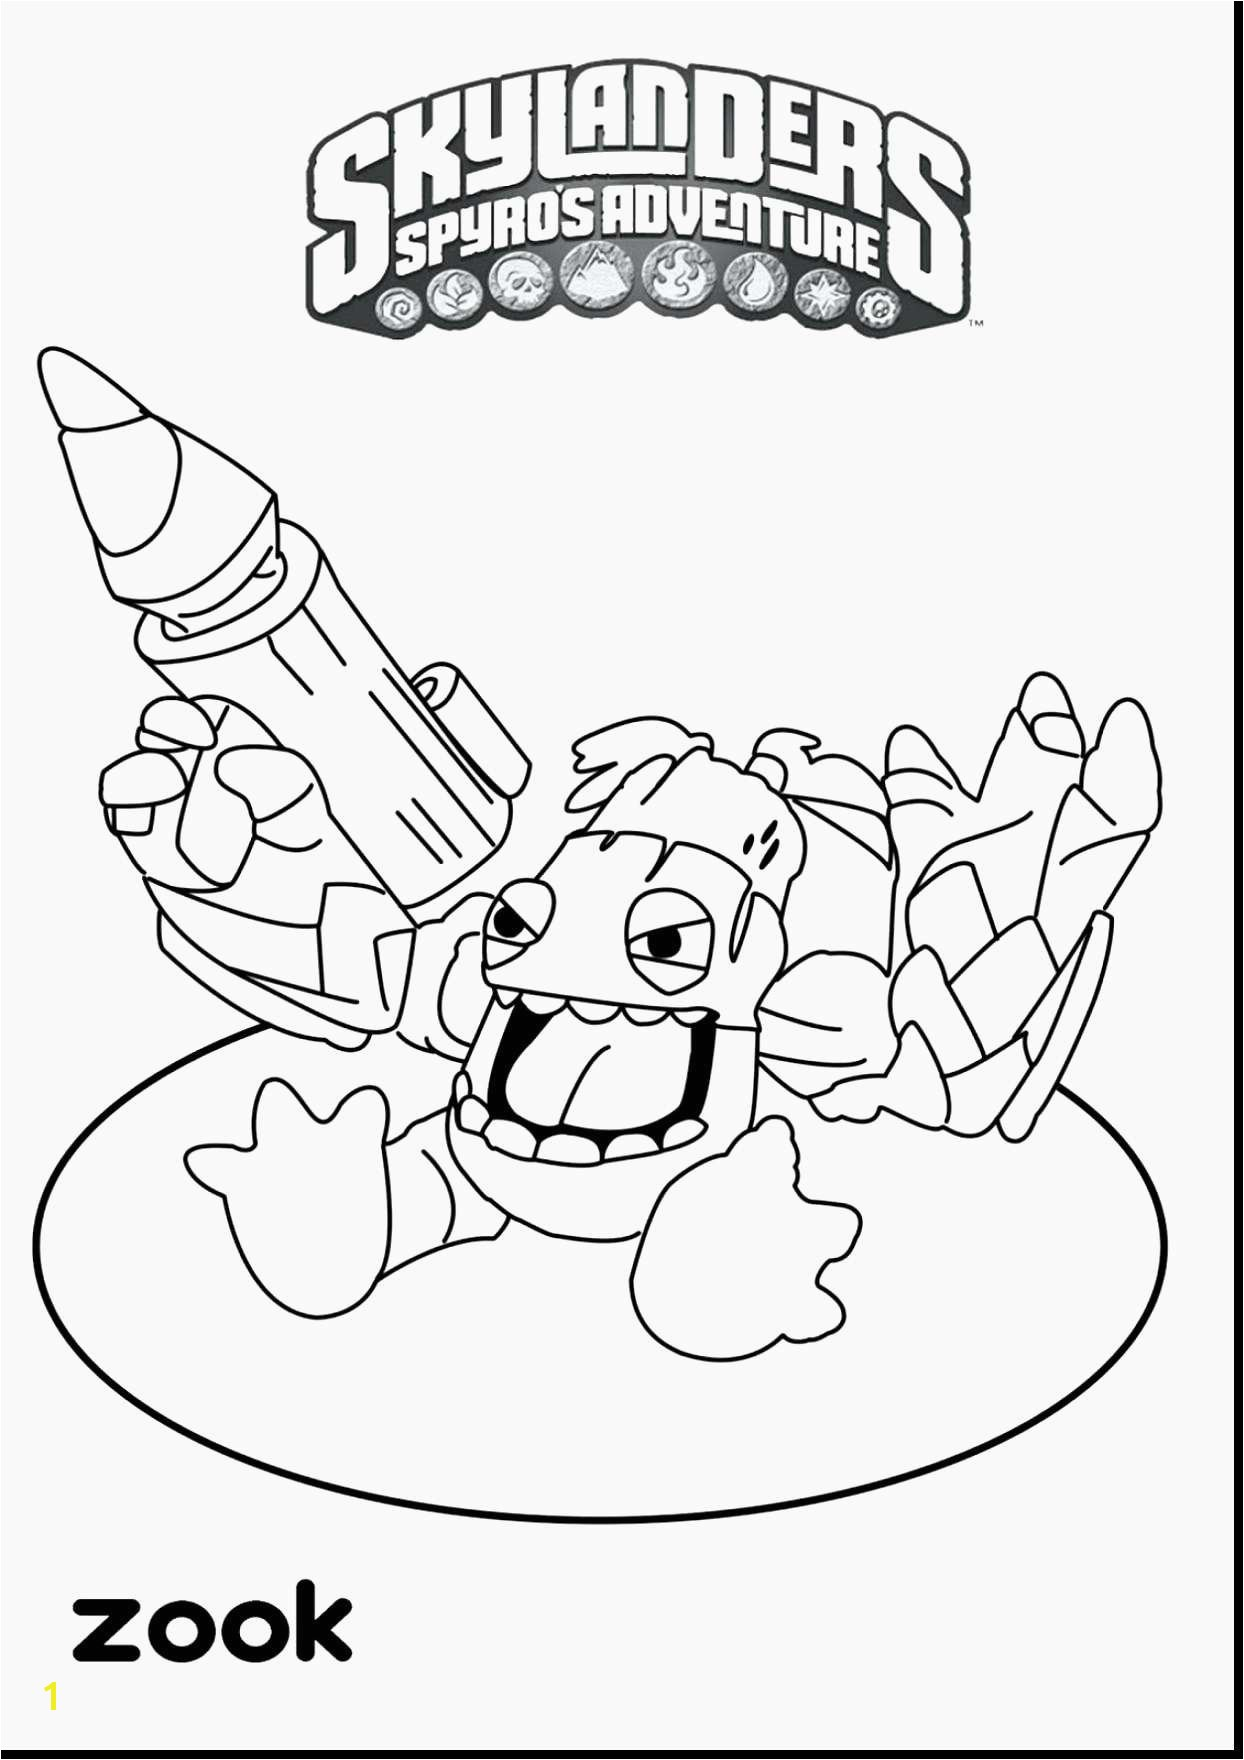 Princess Coloring Sheets Elegant Cool Coloring Page Unique Witch Coloring Pages New Crayola Pages 0d